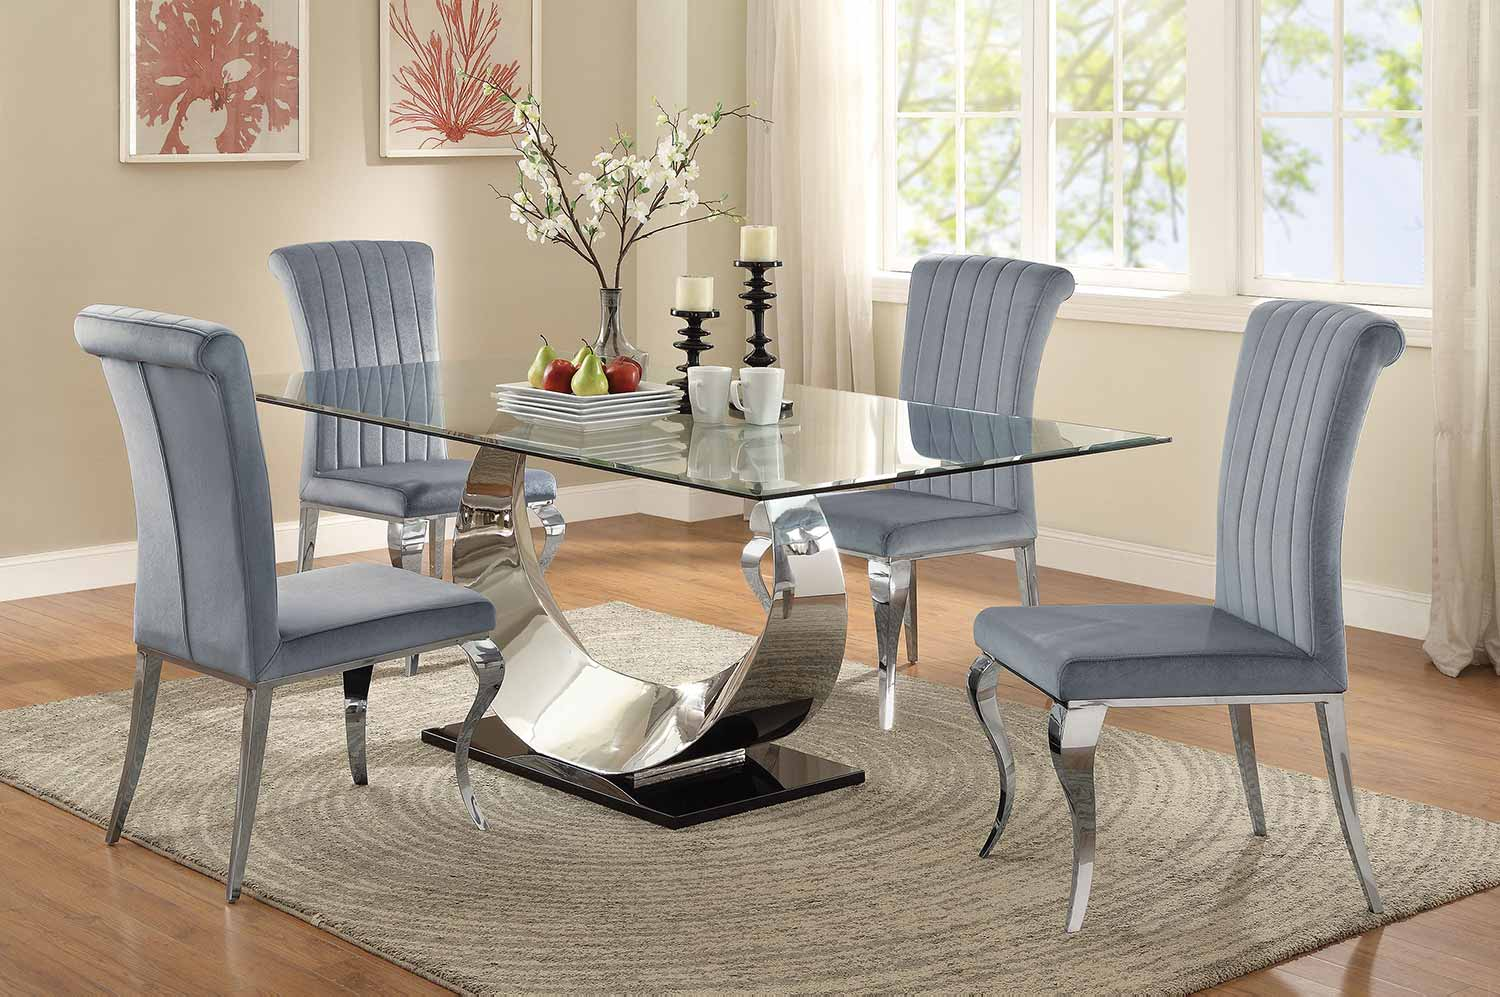 Coaster Manessier Rectangular Glass Dining Set   Chrome